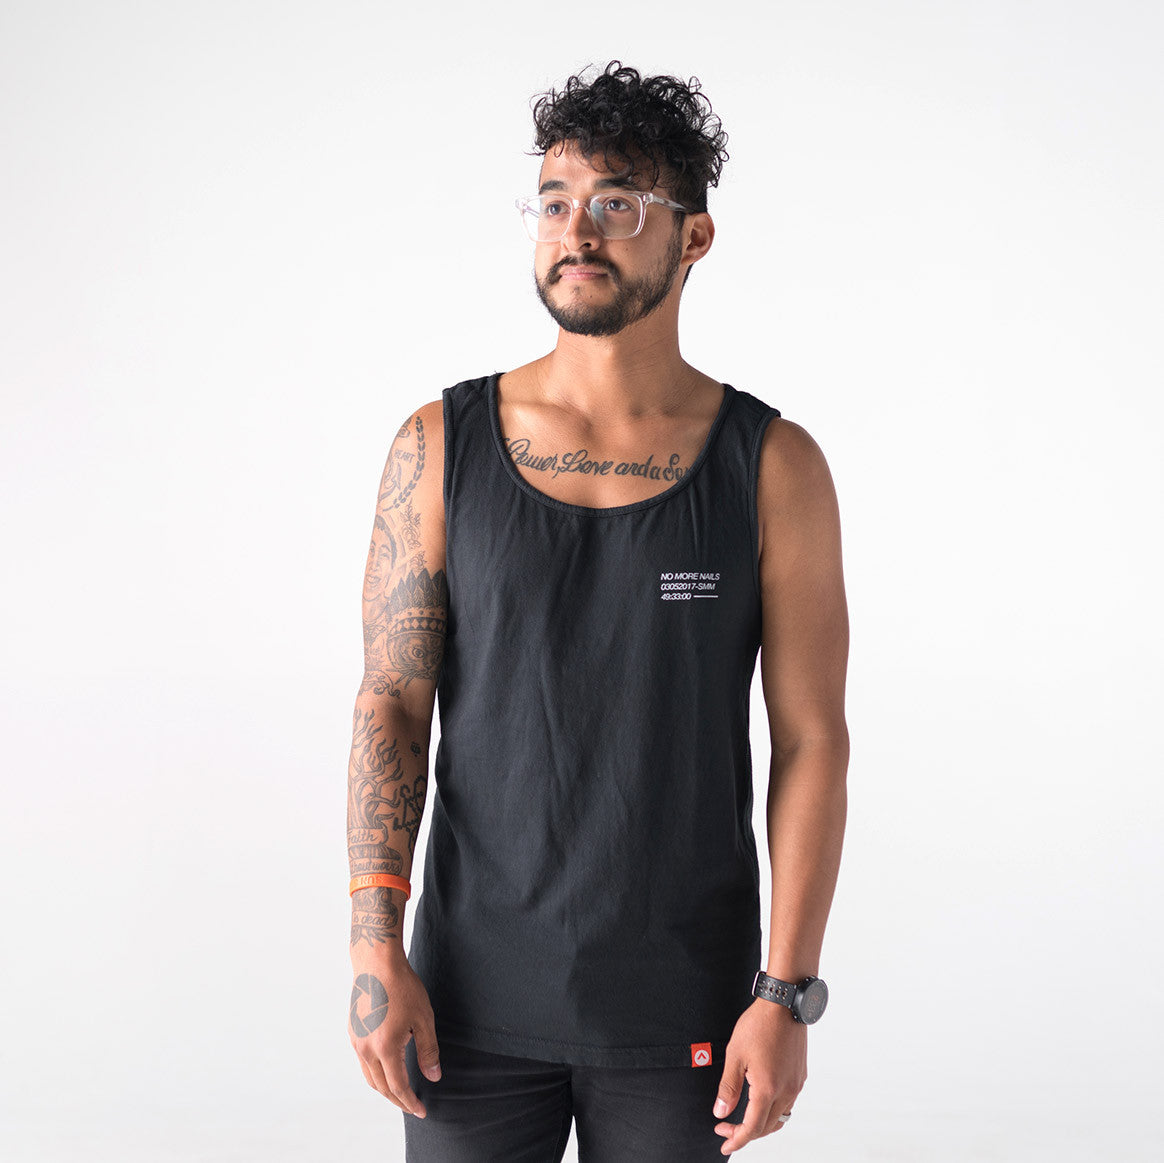 No More Nails - Men's Tank